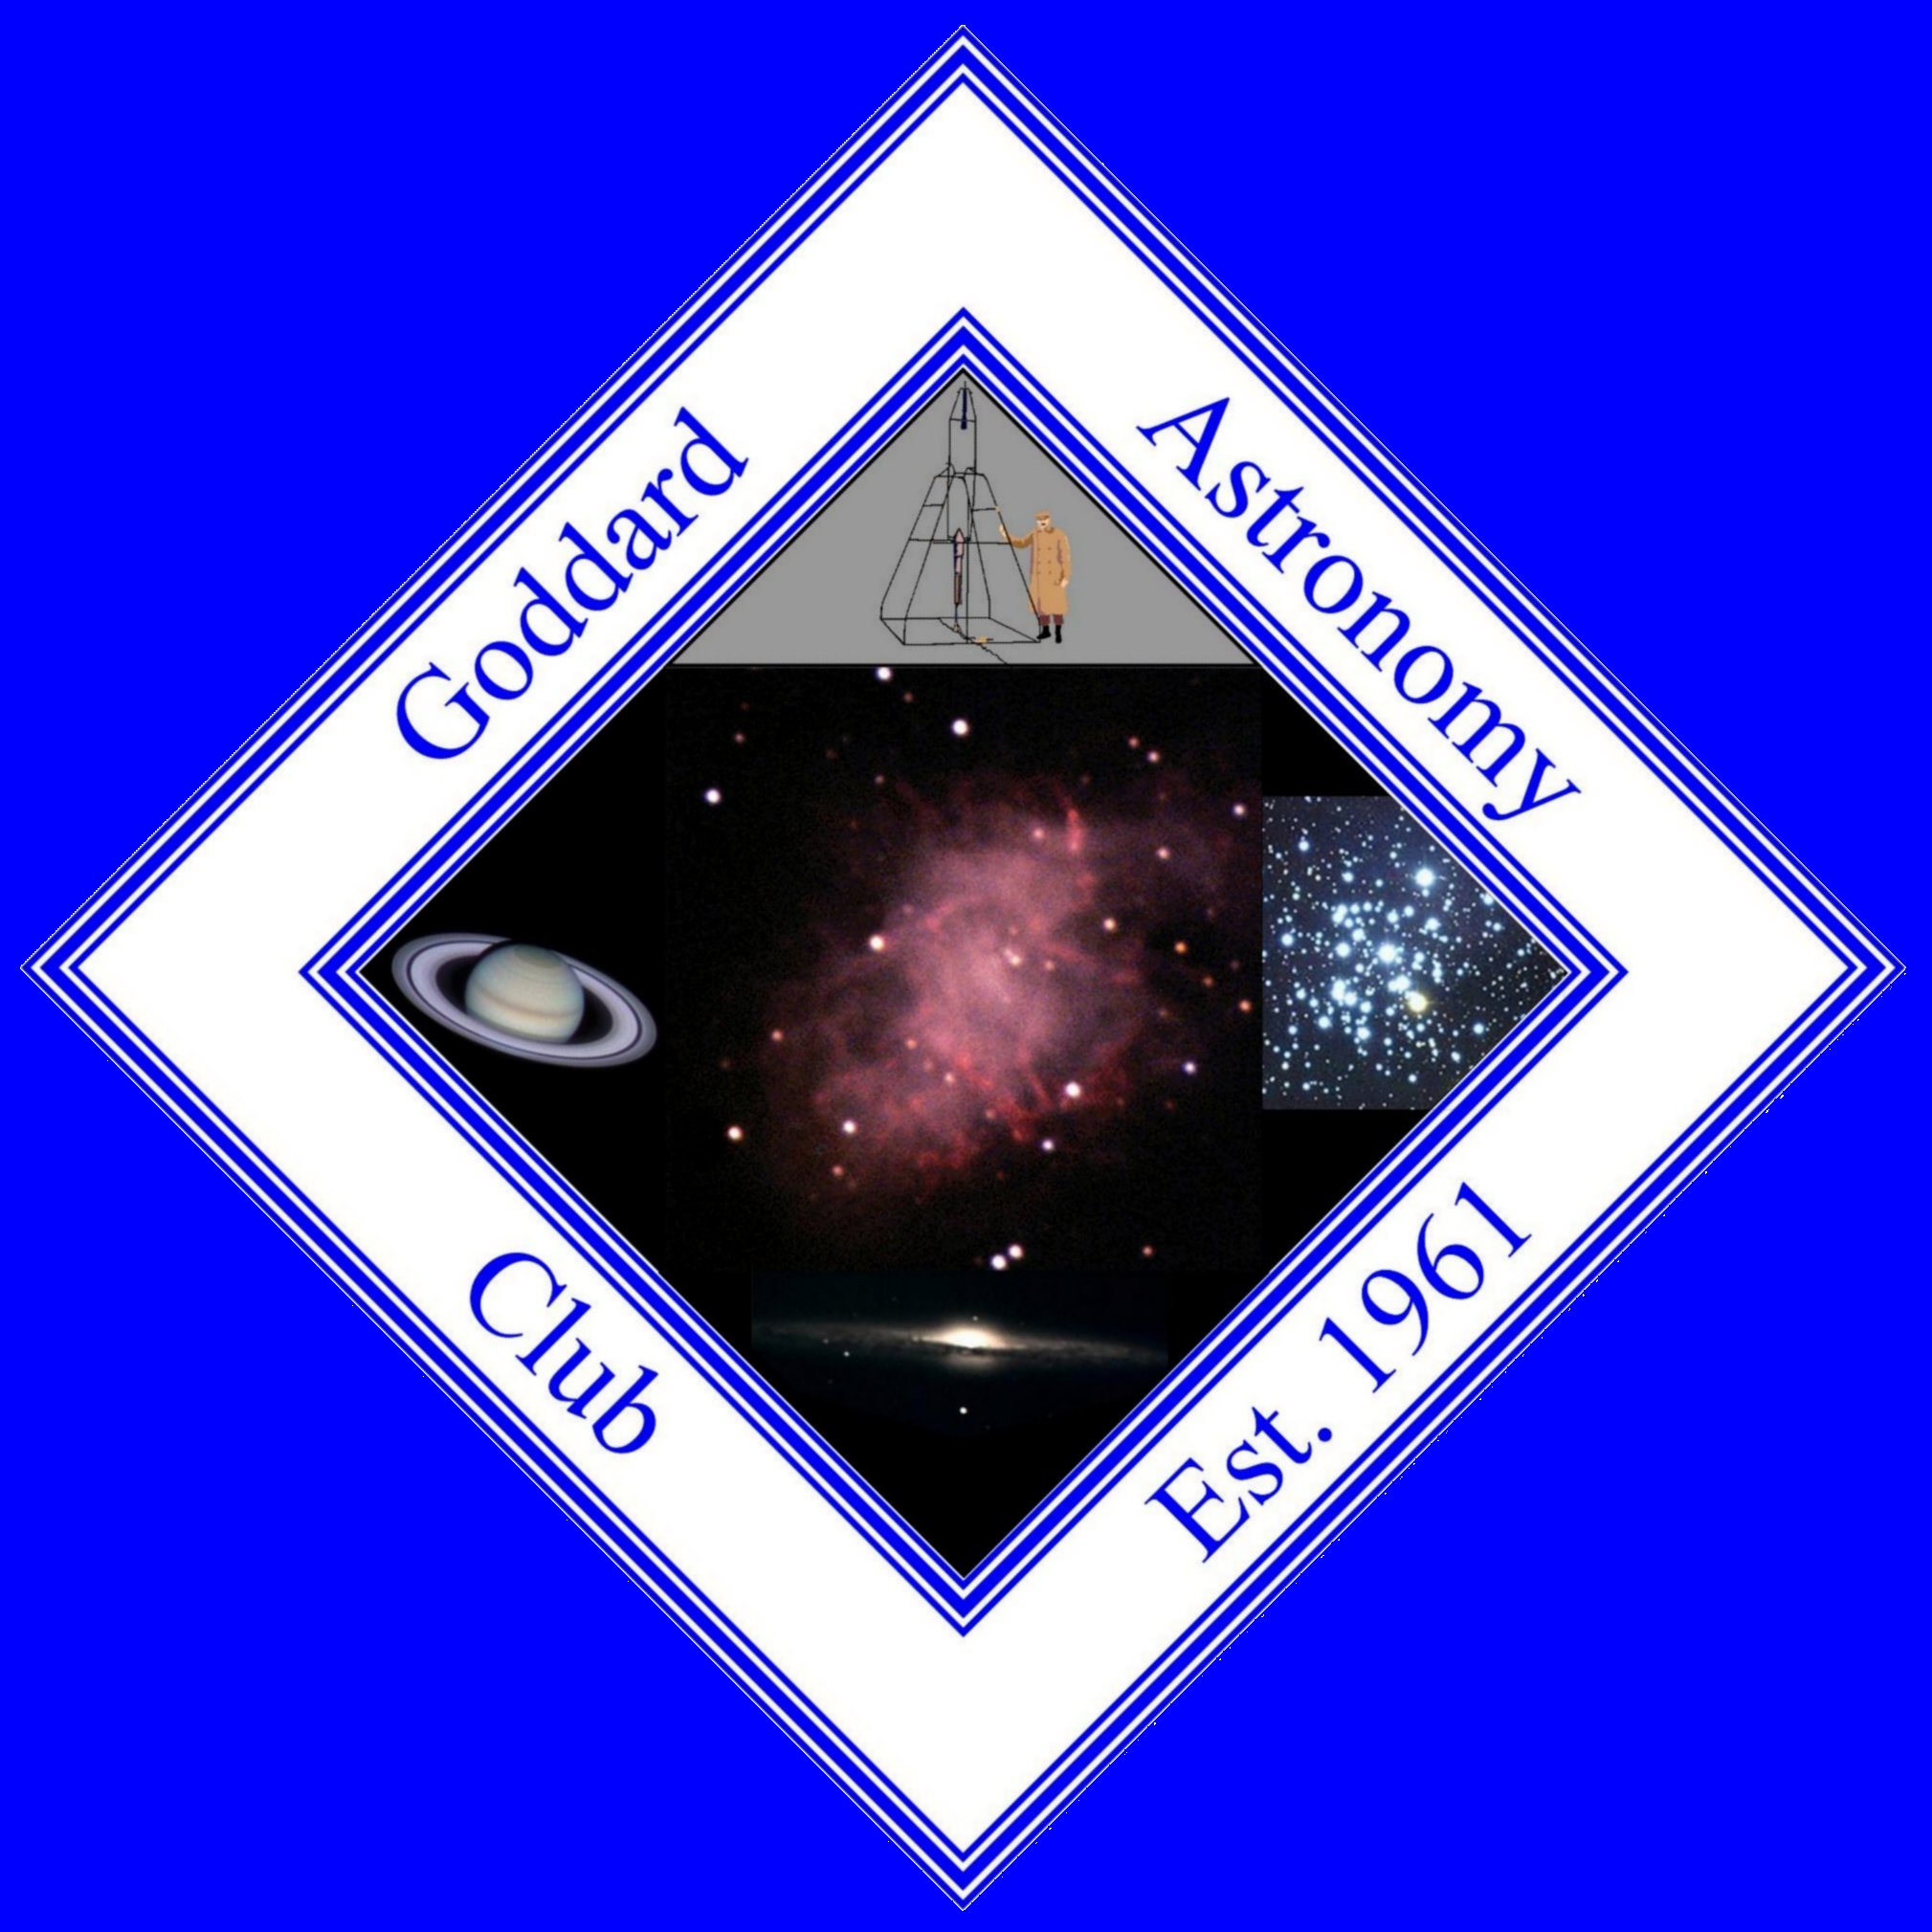 Goddard Astronomy Club logo showing the Crab nebula in the center, with a picture of Robert Goddard and his first rocket above, to the left a telescopic view of Saturn, to the right an open cluster and below, an edge on view of a spiral galaxy.